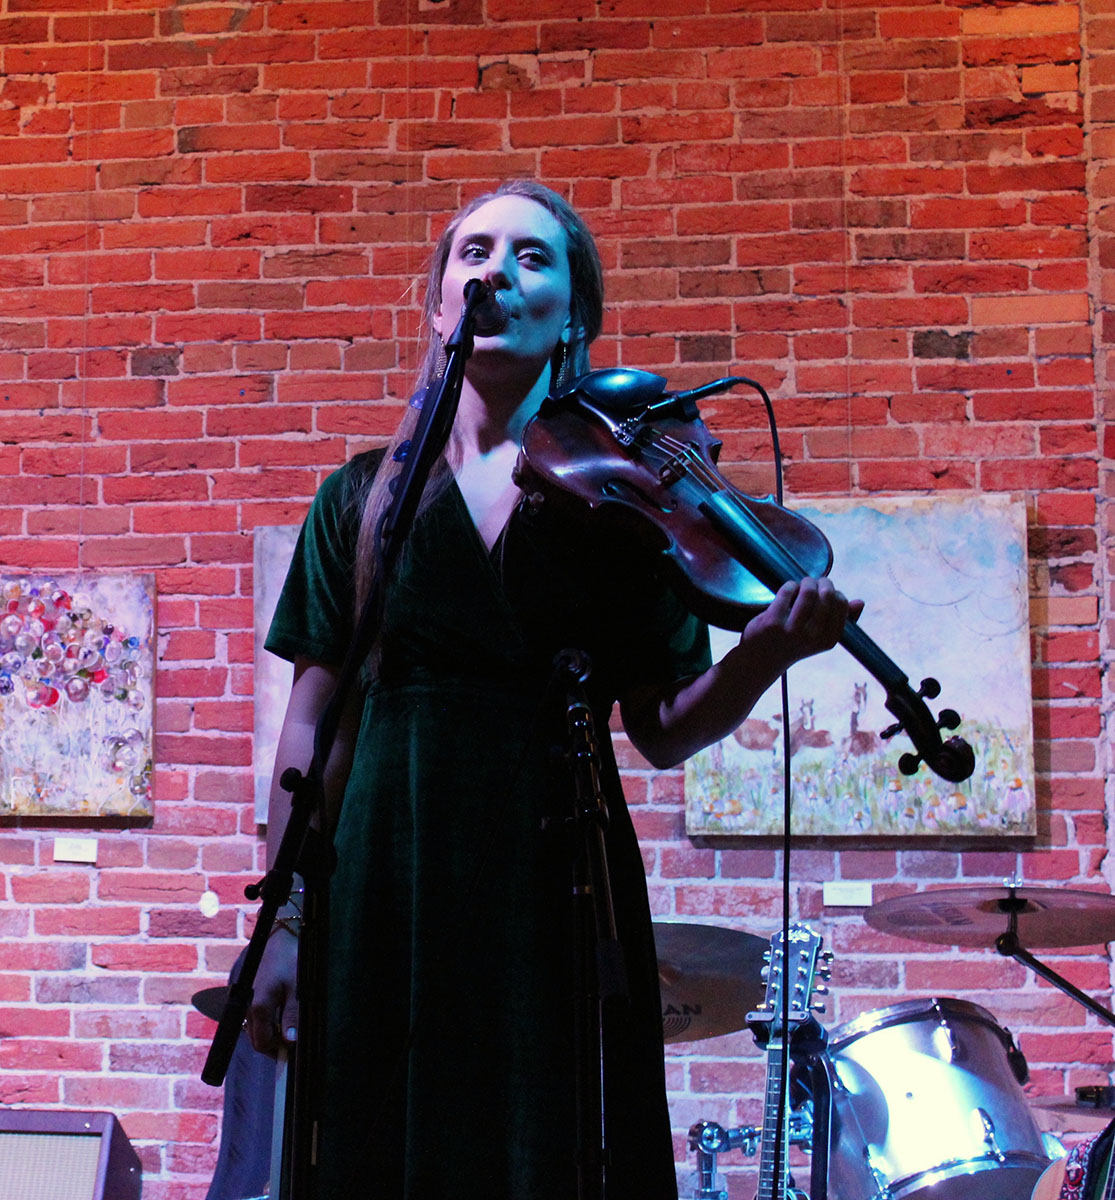 Singer-songwriter Bri Murphy, an Eau Claire native who spent the last five years in Nashville, Tennessee returned Saturday night for a concert at the Volume One Gallery. She switched between playing guitar, fiddle and the mandolin during her performance.